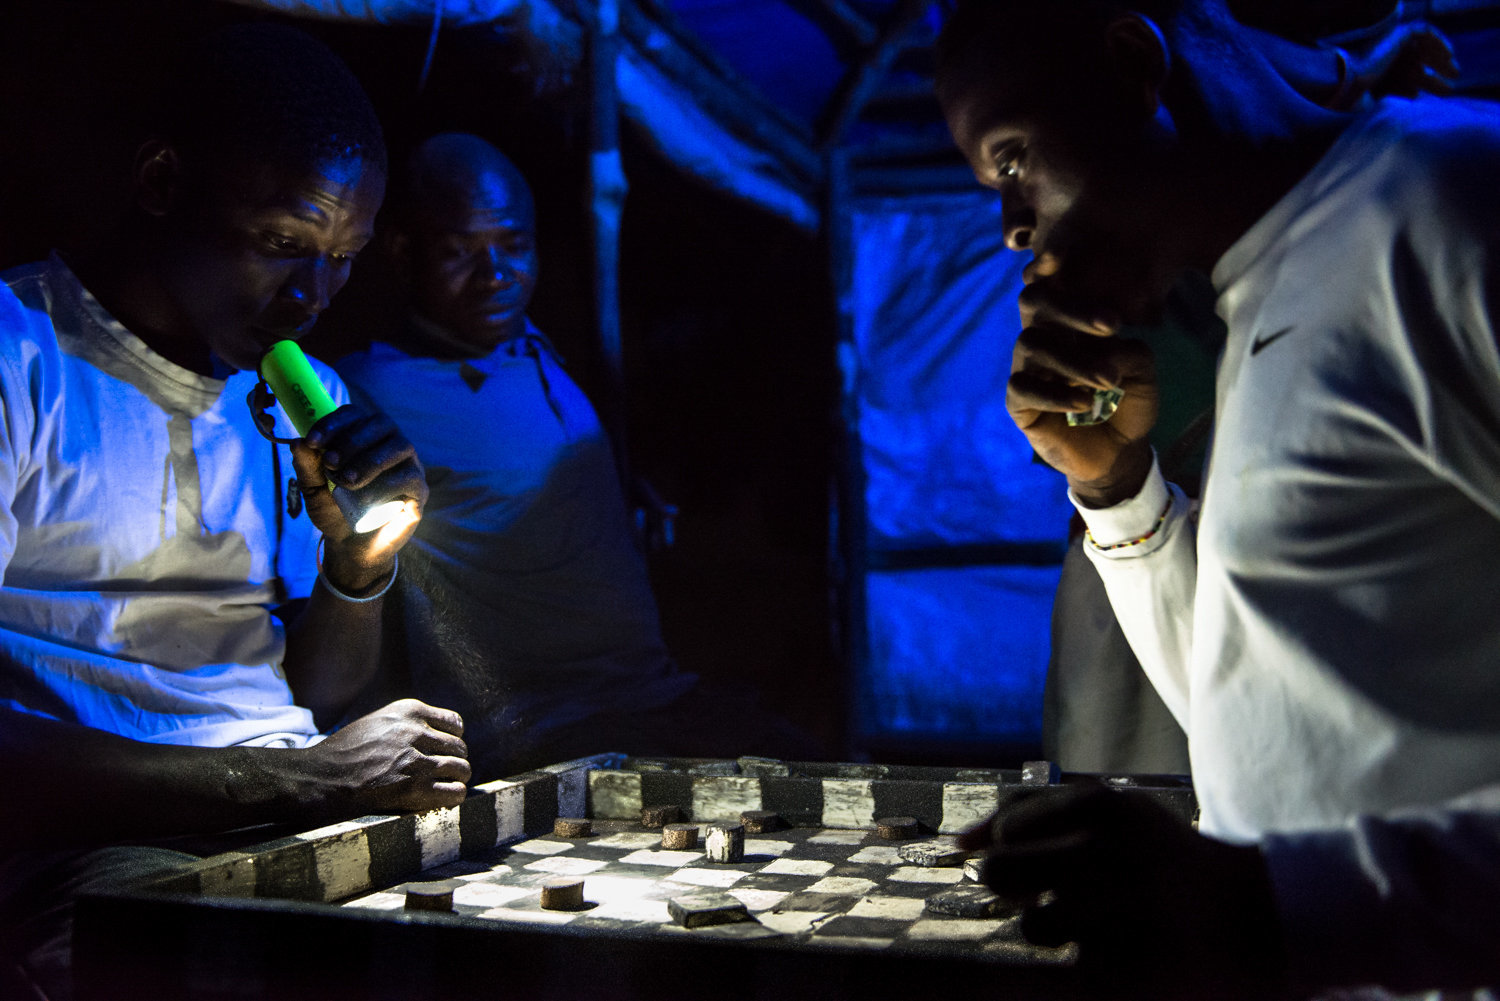 Local fishermen gather in the evenings at the beachfront club to play checkers.